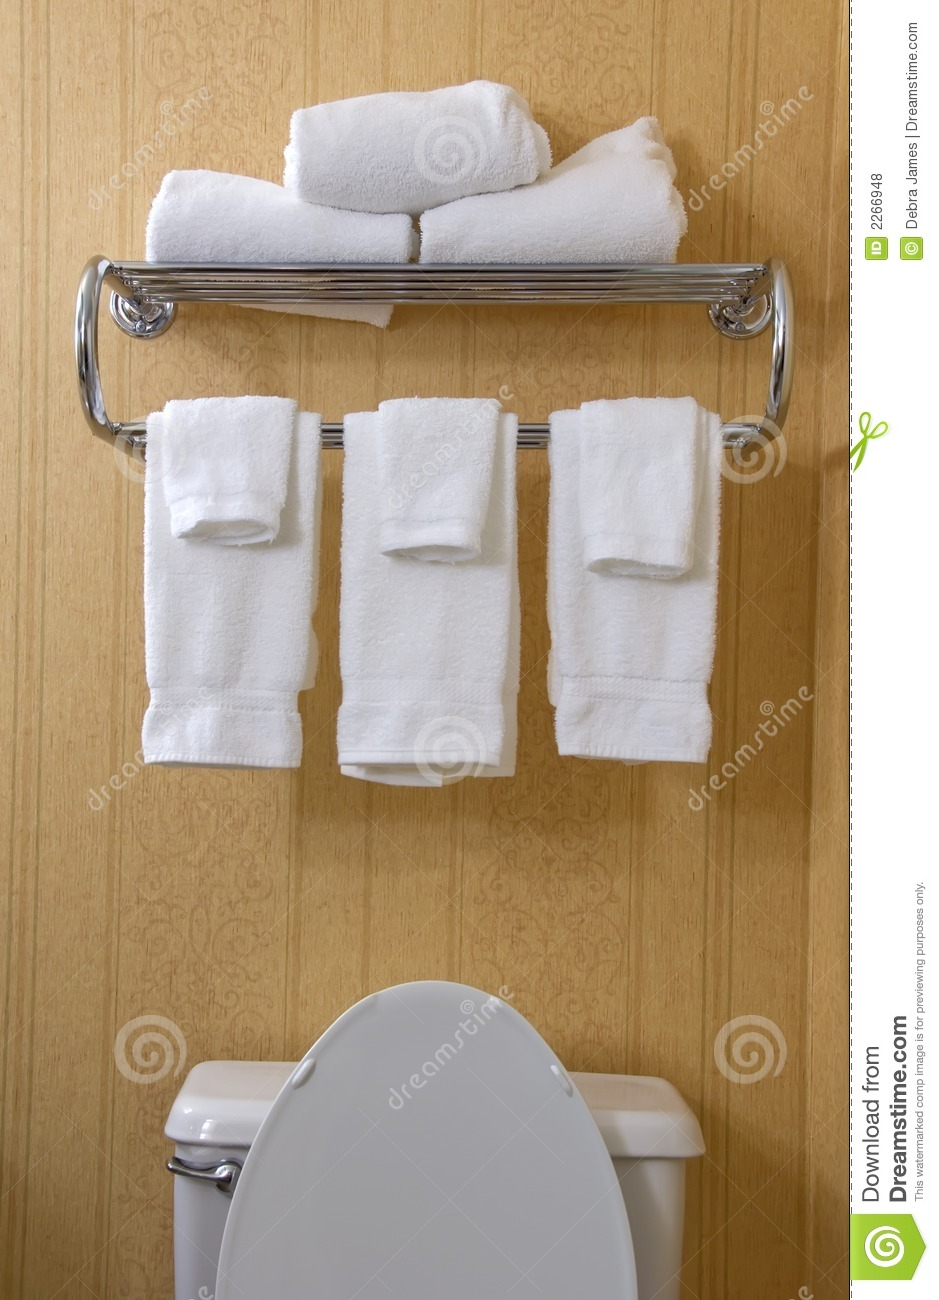 Fabulous Over Toilet Towel Rack 939 x 1300 · 249 kB · jpeg